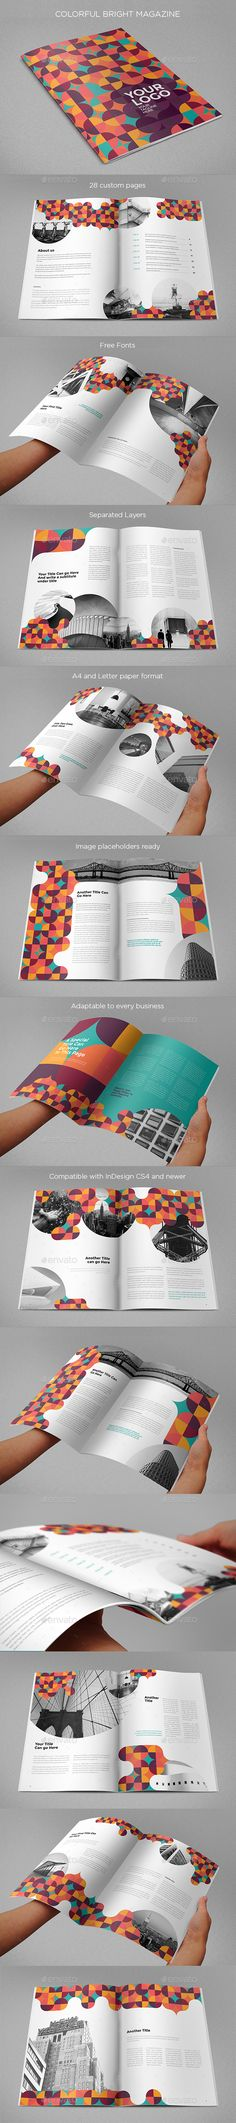 Colorful Pattern Circles Brochure Template InDesign INDD. Download here: http://graphicriver.net/item/colorful-pattern-circles-brochure/16478243?ref=ksioks